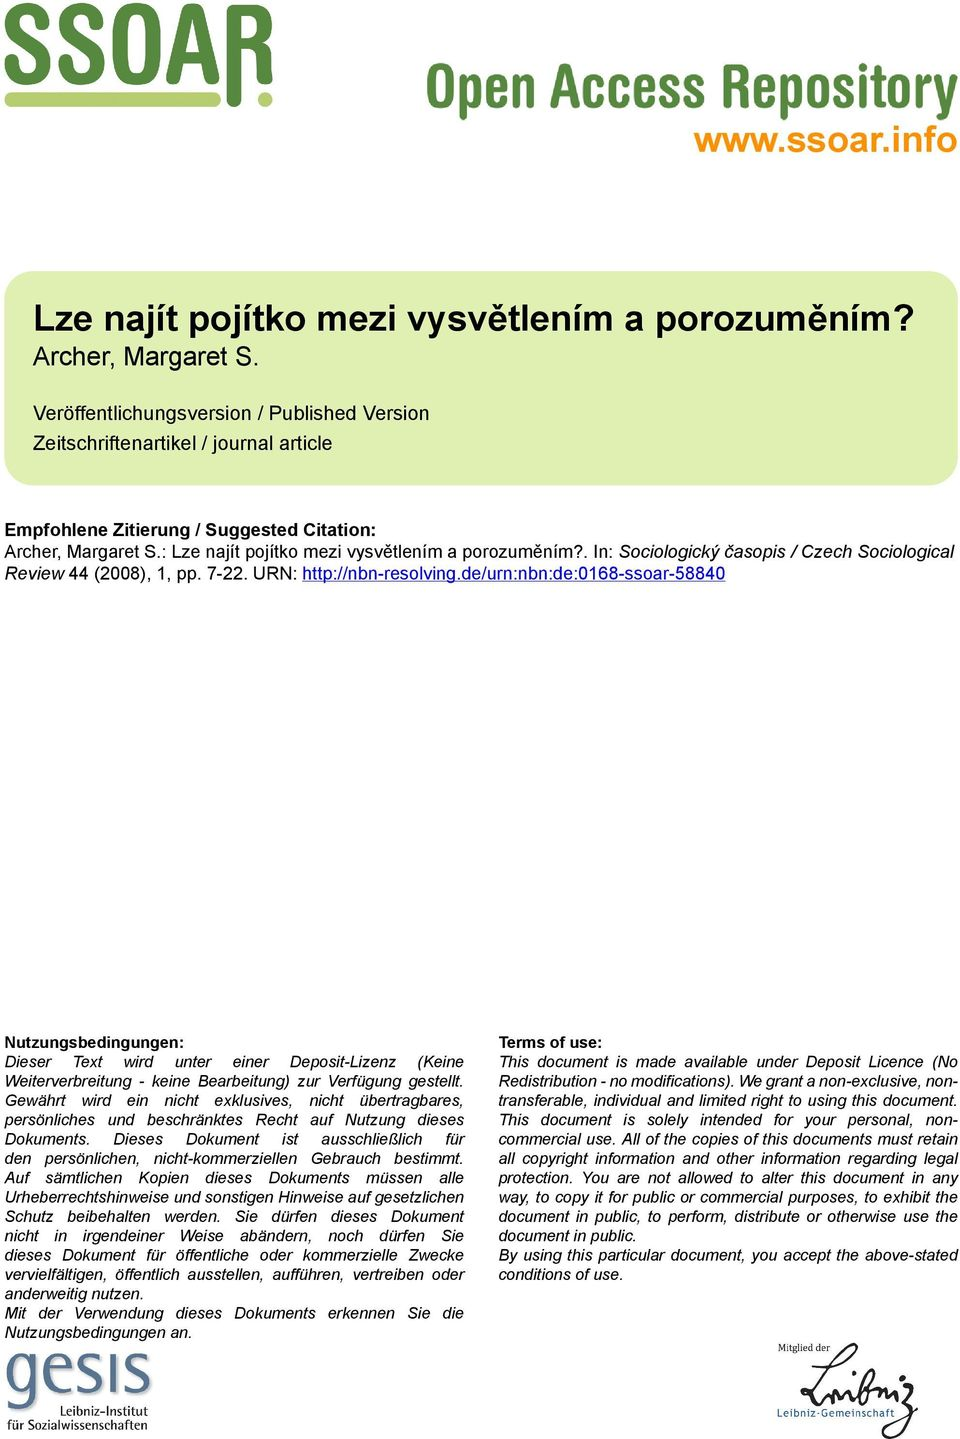 . In: Sociologický časopis / Czech Sociological Review 44 (2008), 1, pp. 7-22. URN: http://nbn-resolving.